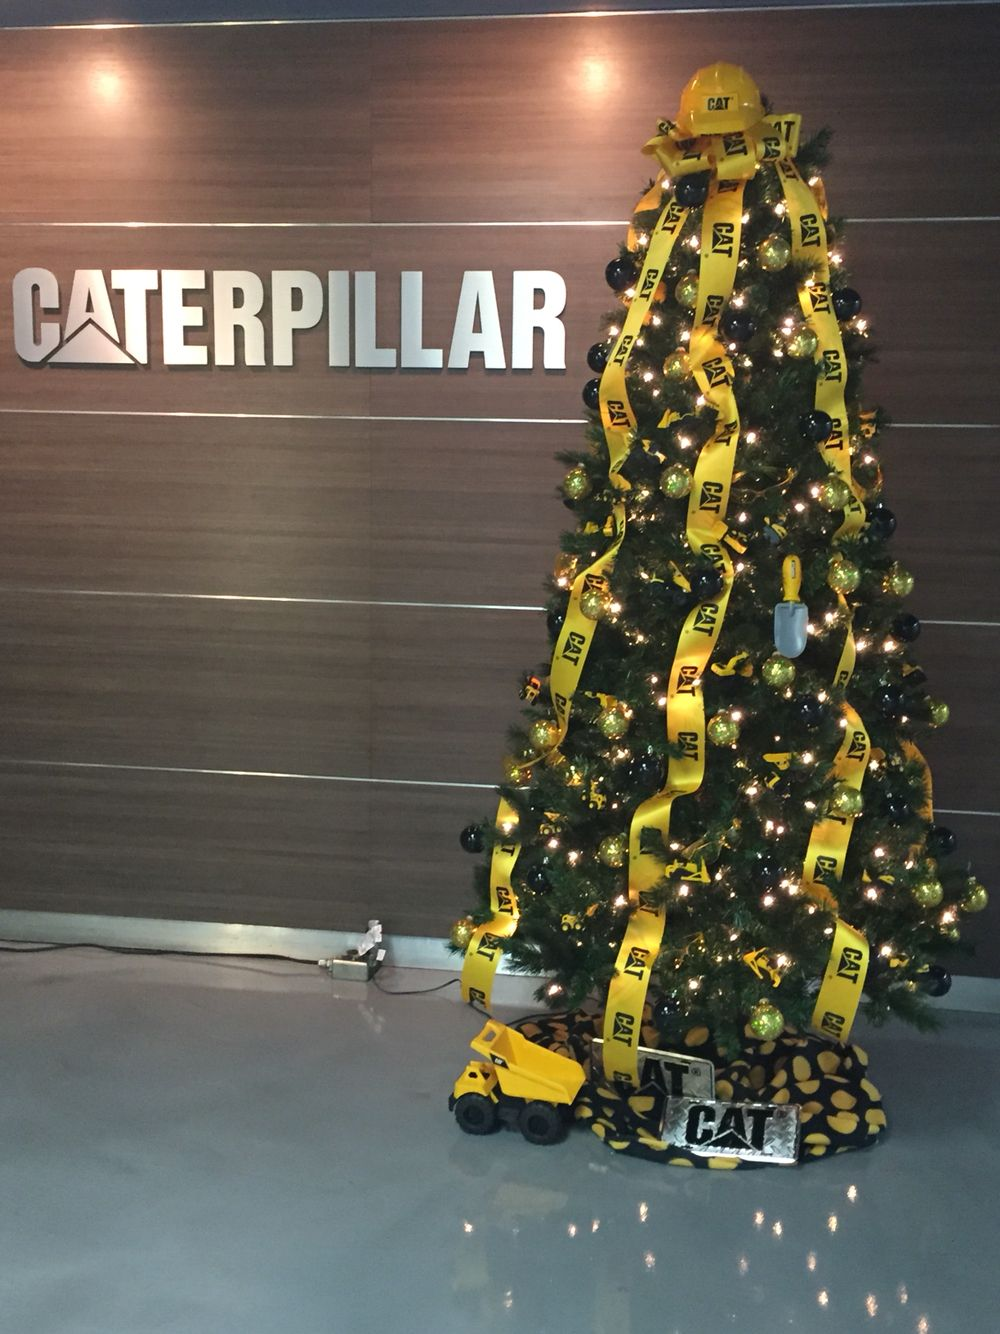 Construction Themed Christmas Tree At Caterpillar Nlr Christmas Tree Themes Christmas Tree Pictures Green Christmas Tree Decorations